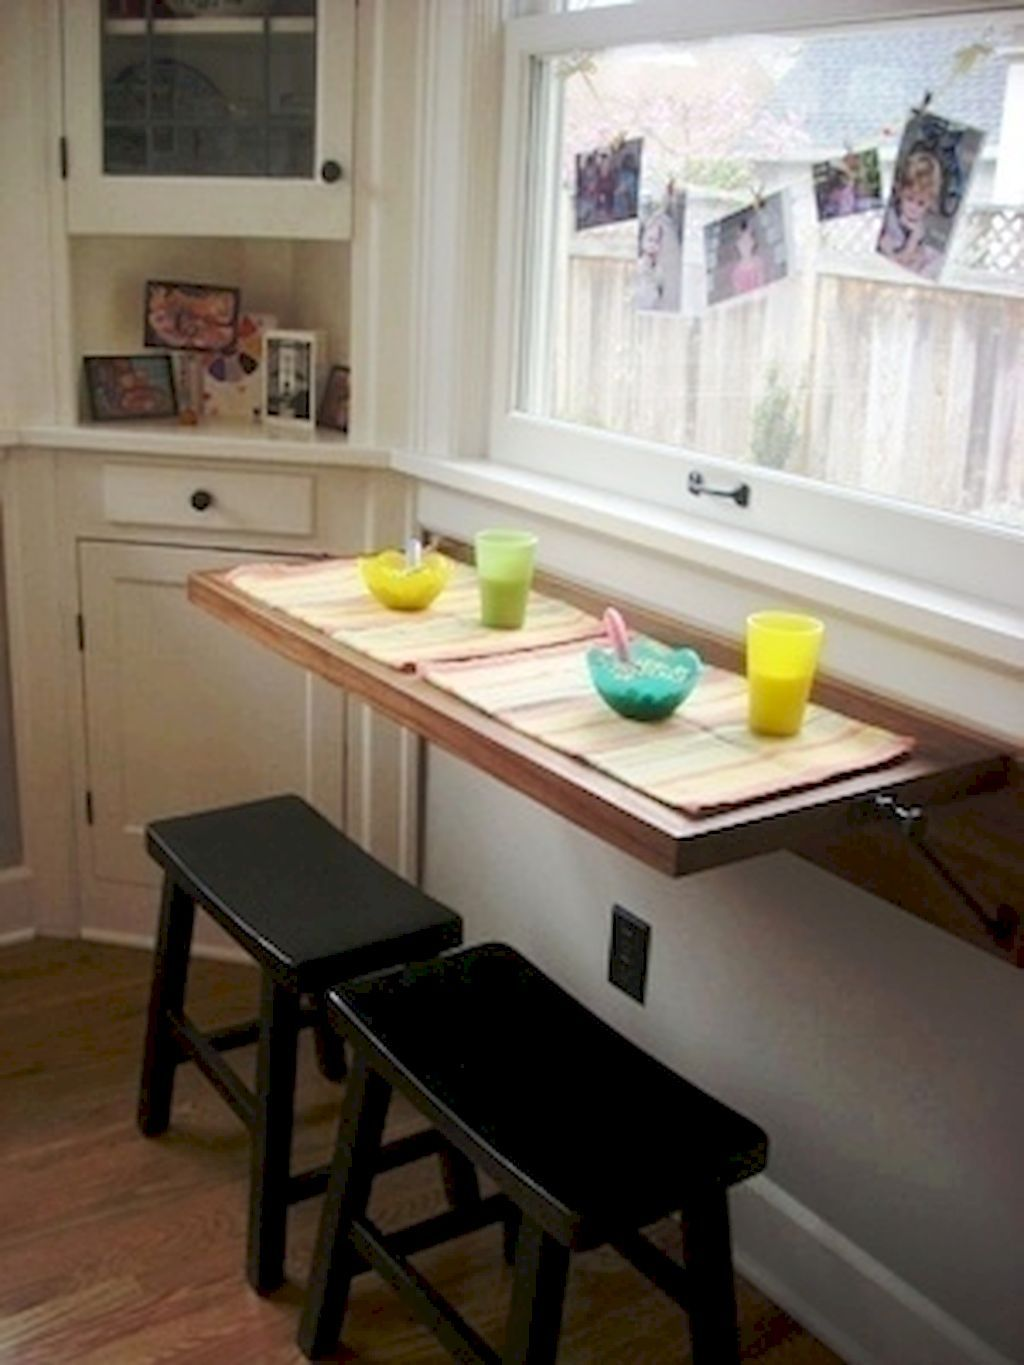 40 small space breakfast nook apartment ideas on a budget | tiny